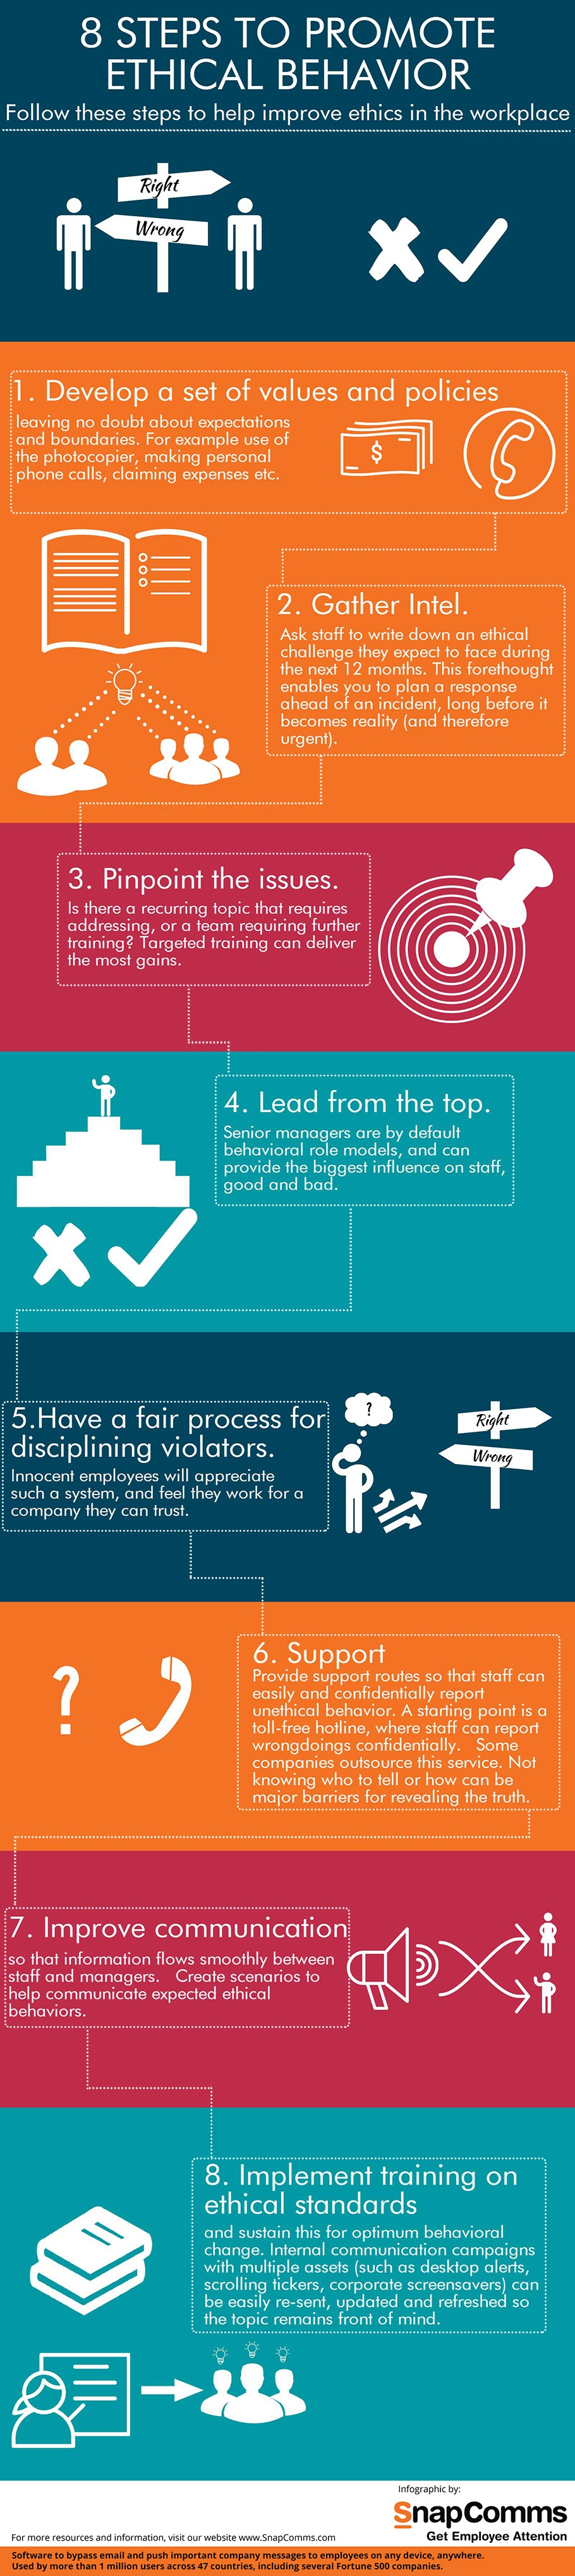 8 Steps to Promote Ethical Behavior [Infographic]